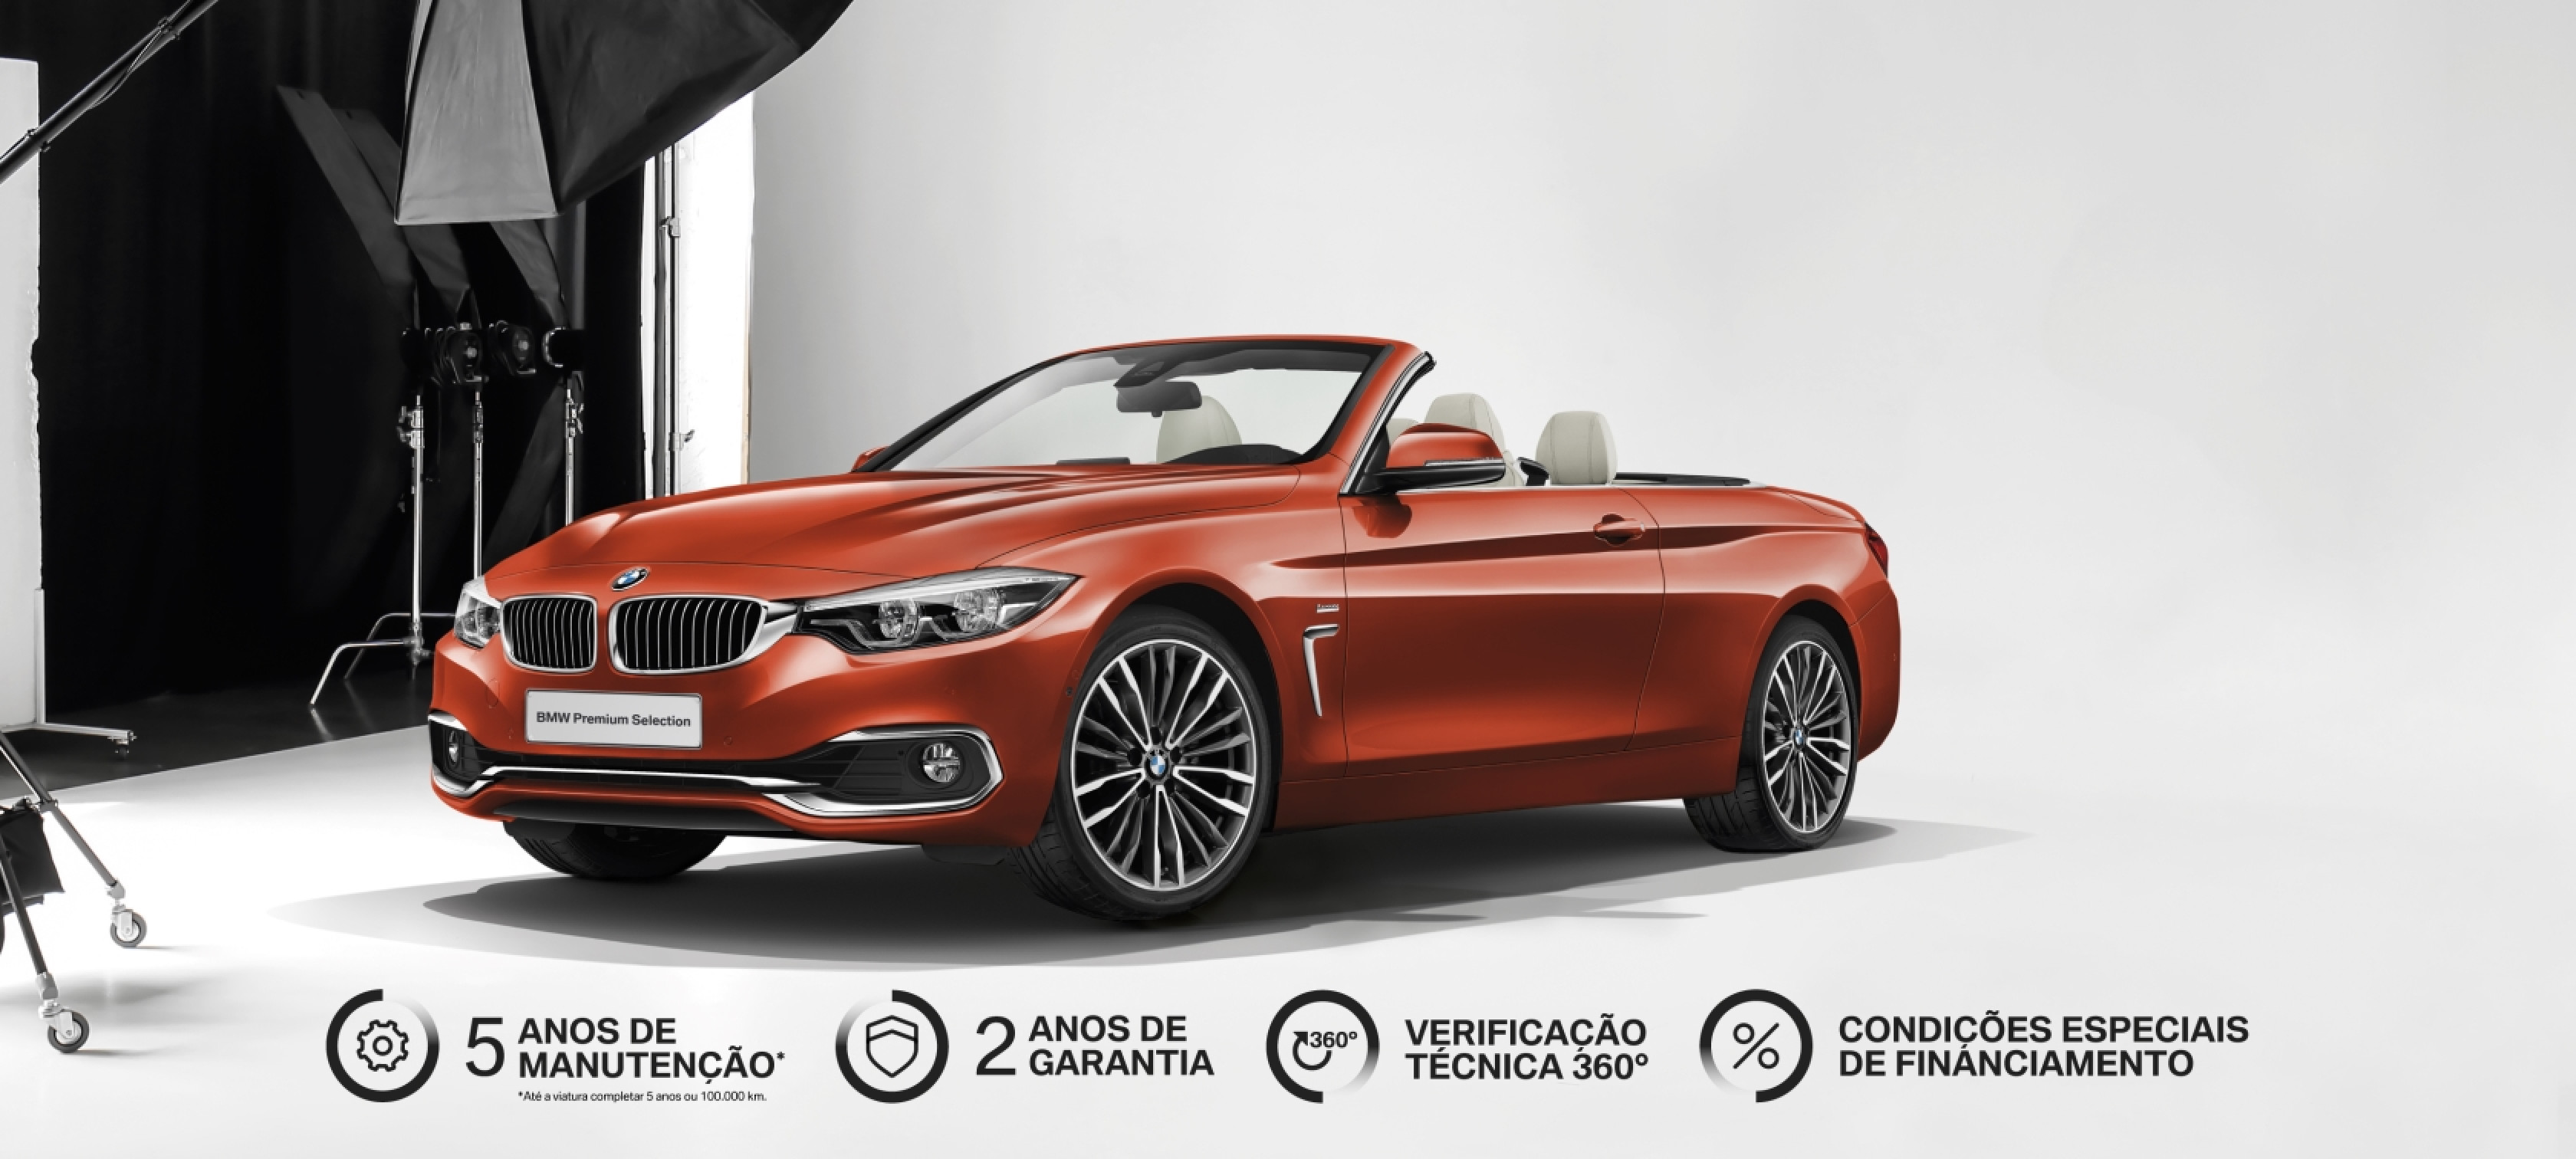 BMW Premium Selection Vantagens